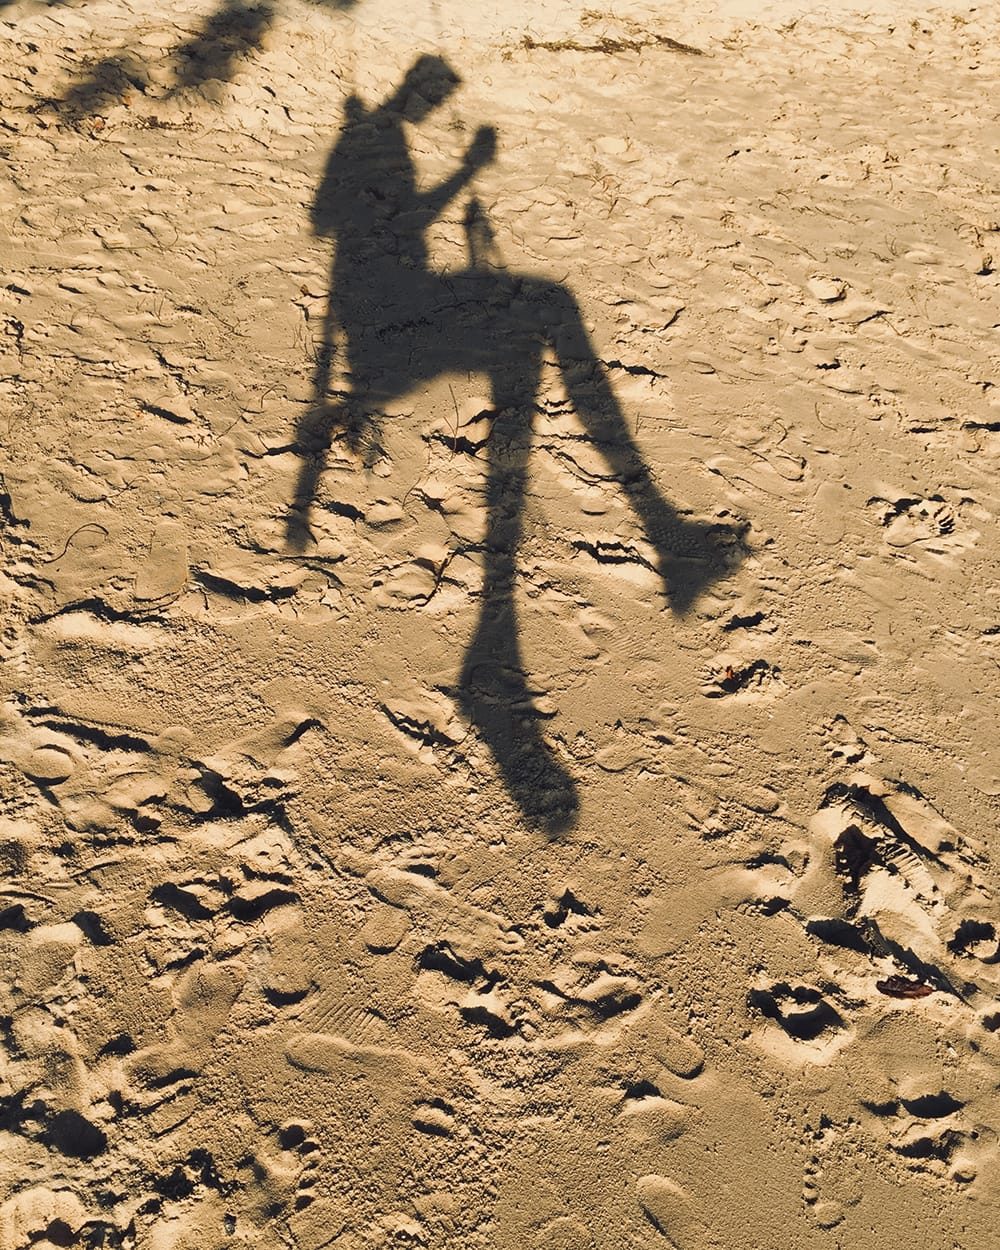 Shadow of a man swinging on a beach. Koh Phi Phi